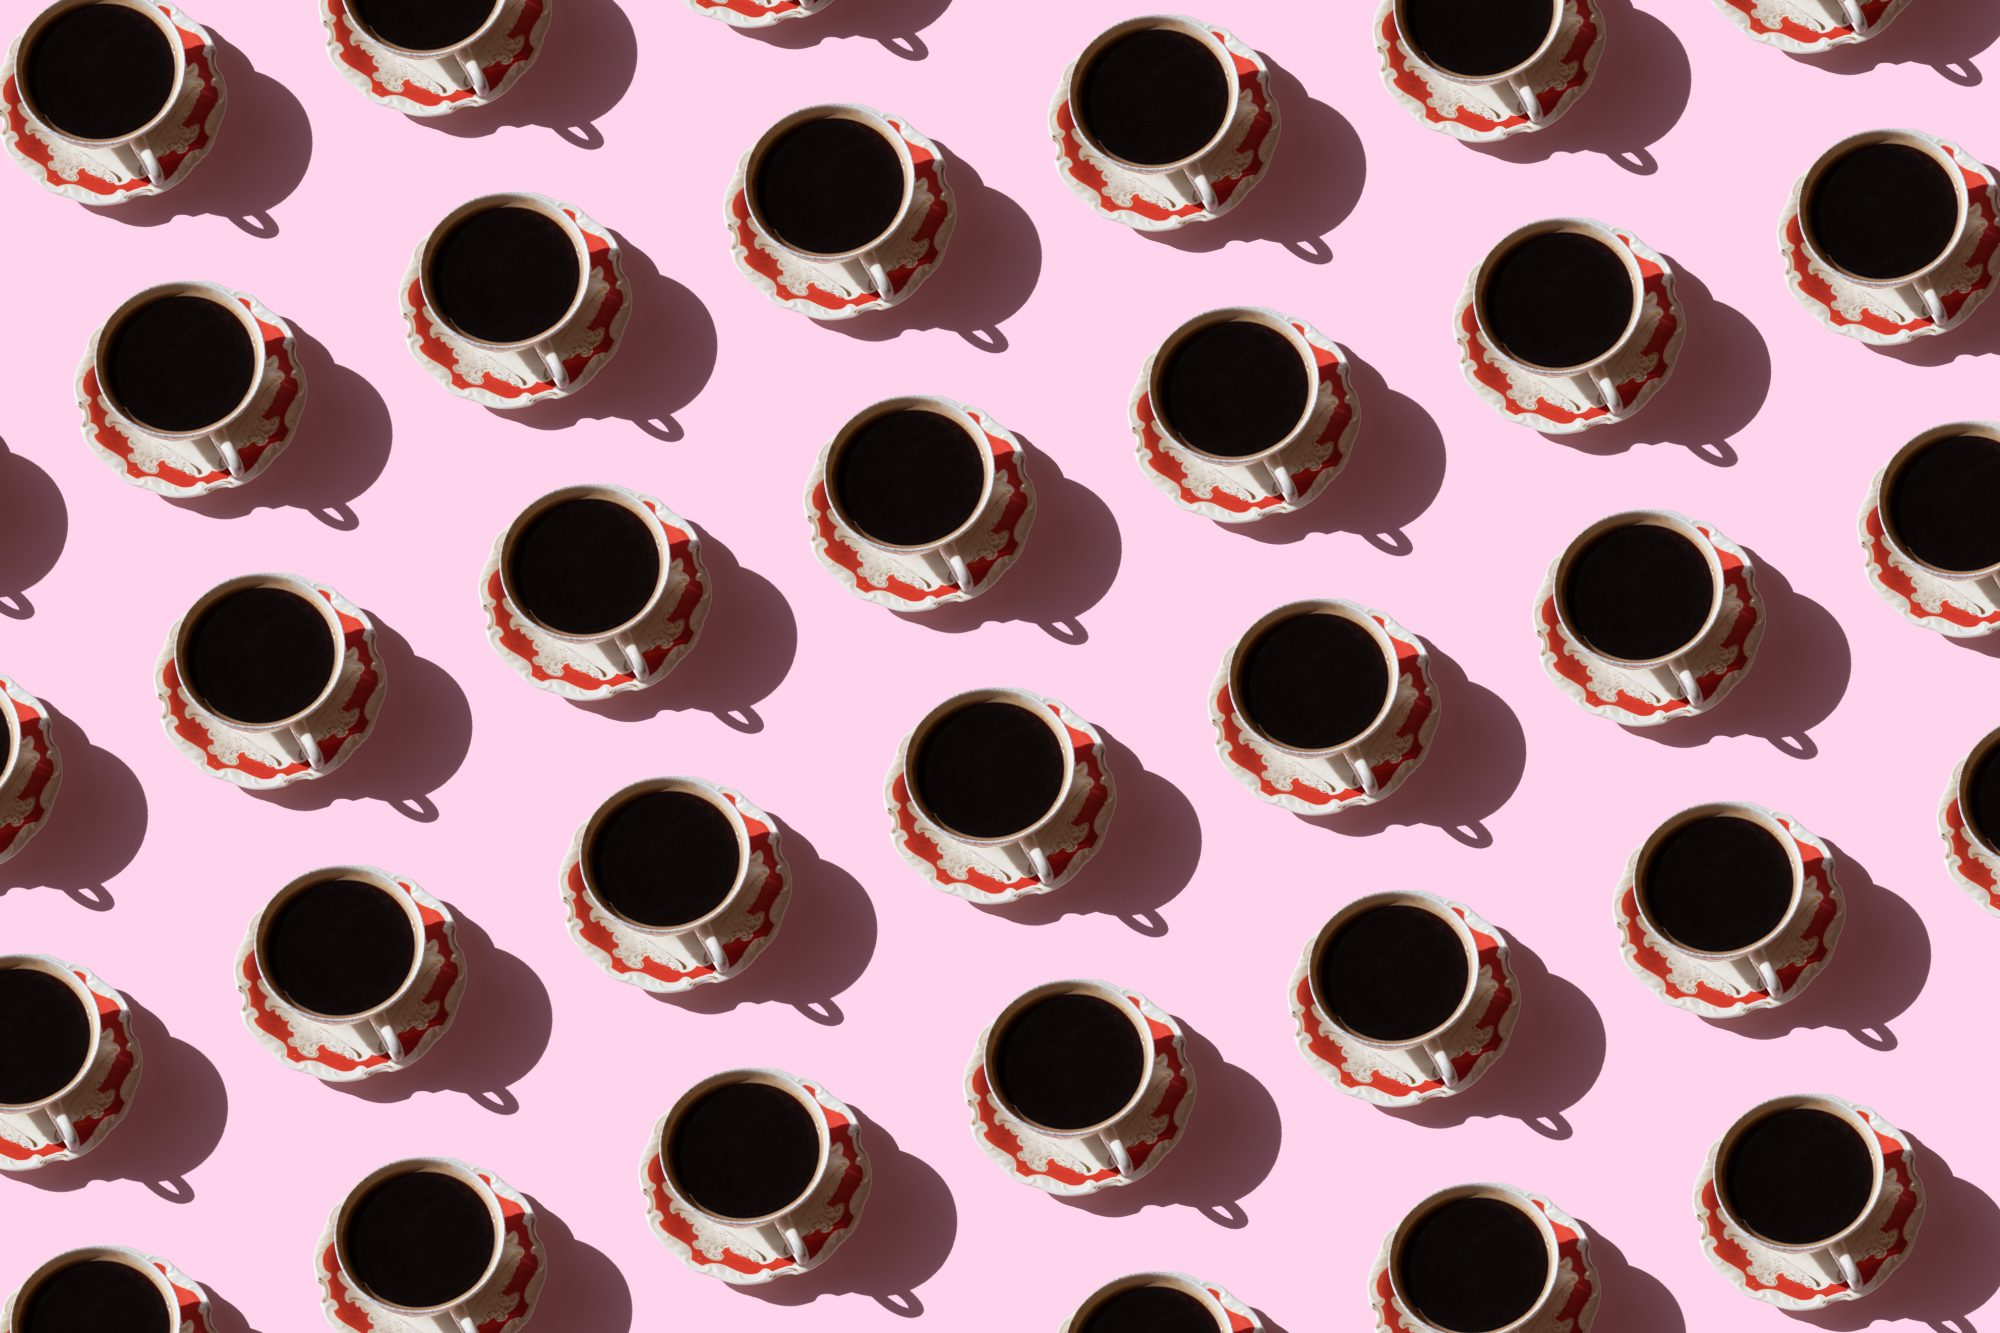 caffeine-guide: coffe cups on a pink background